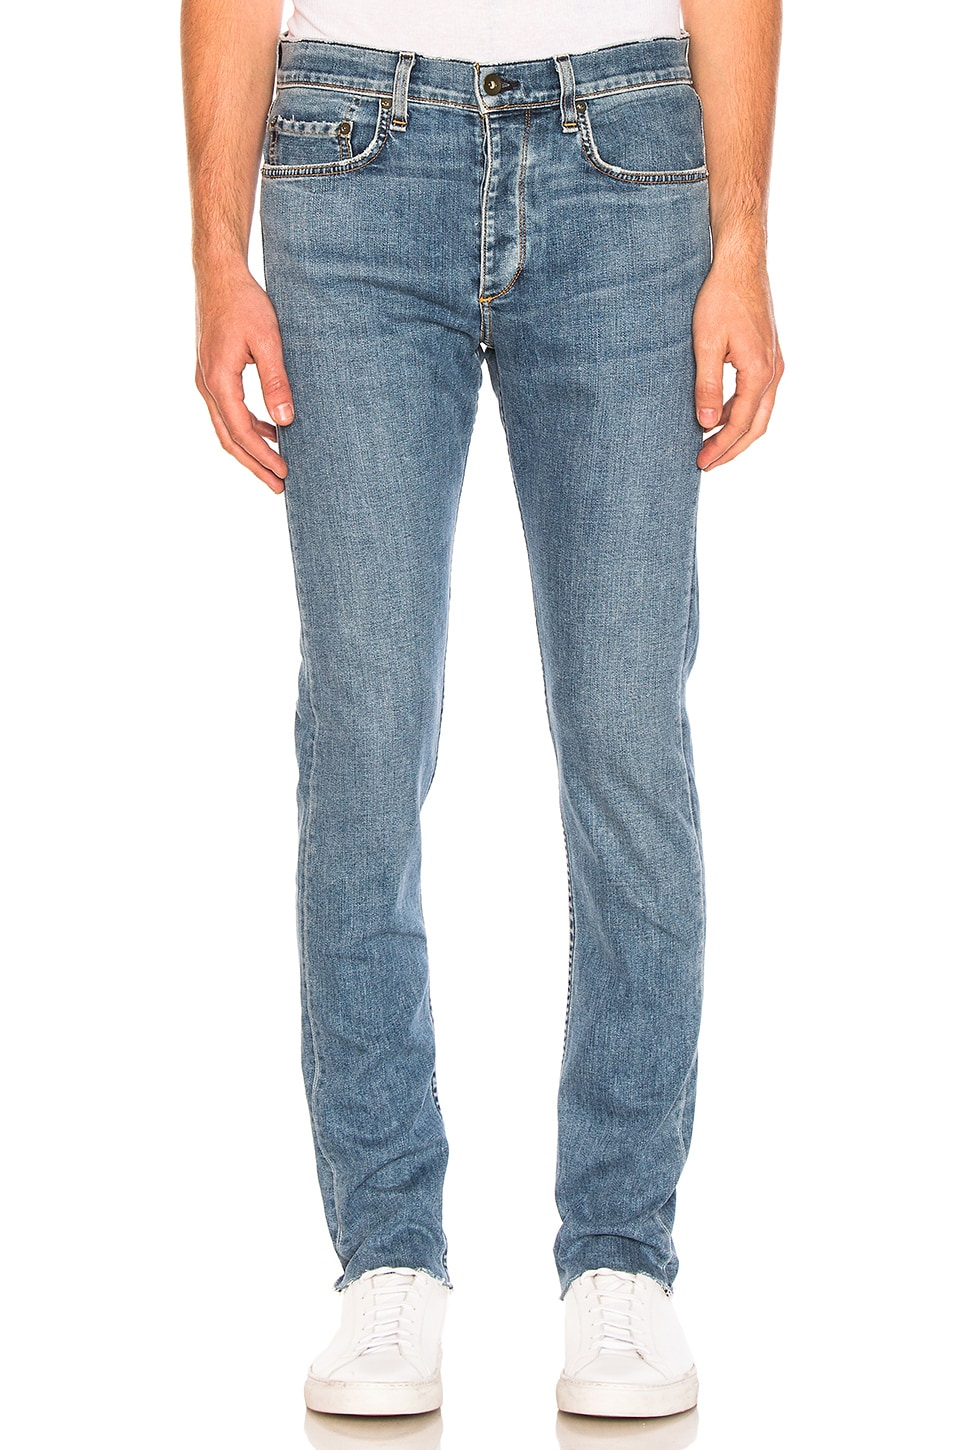 Photo of Standard Issue Fit 2 Jeans by Rag & Bone men clothes